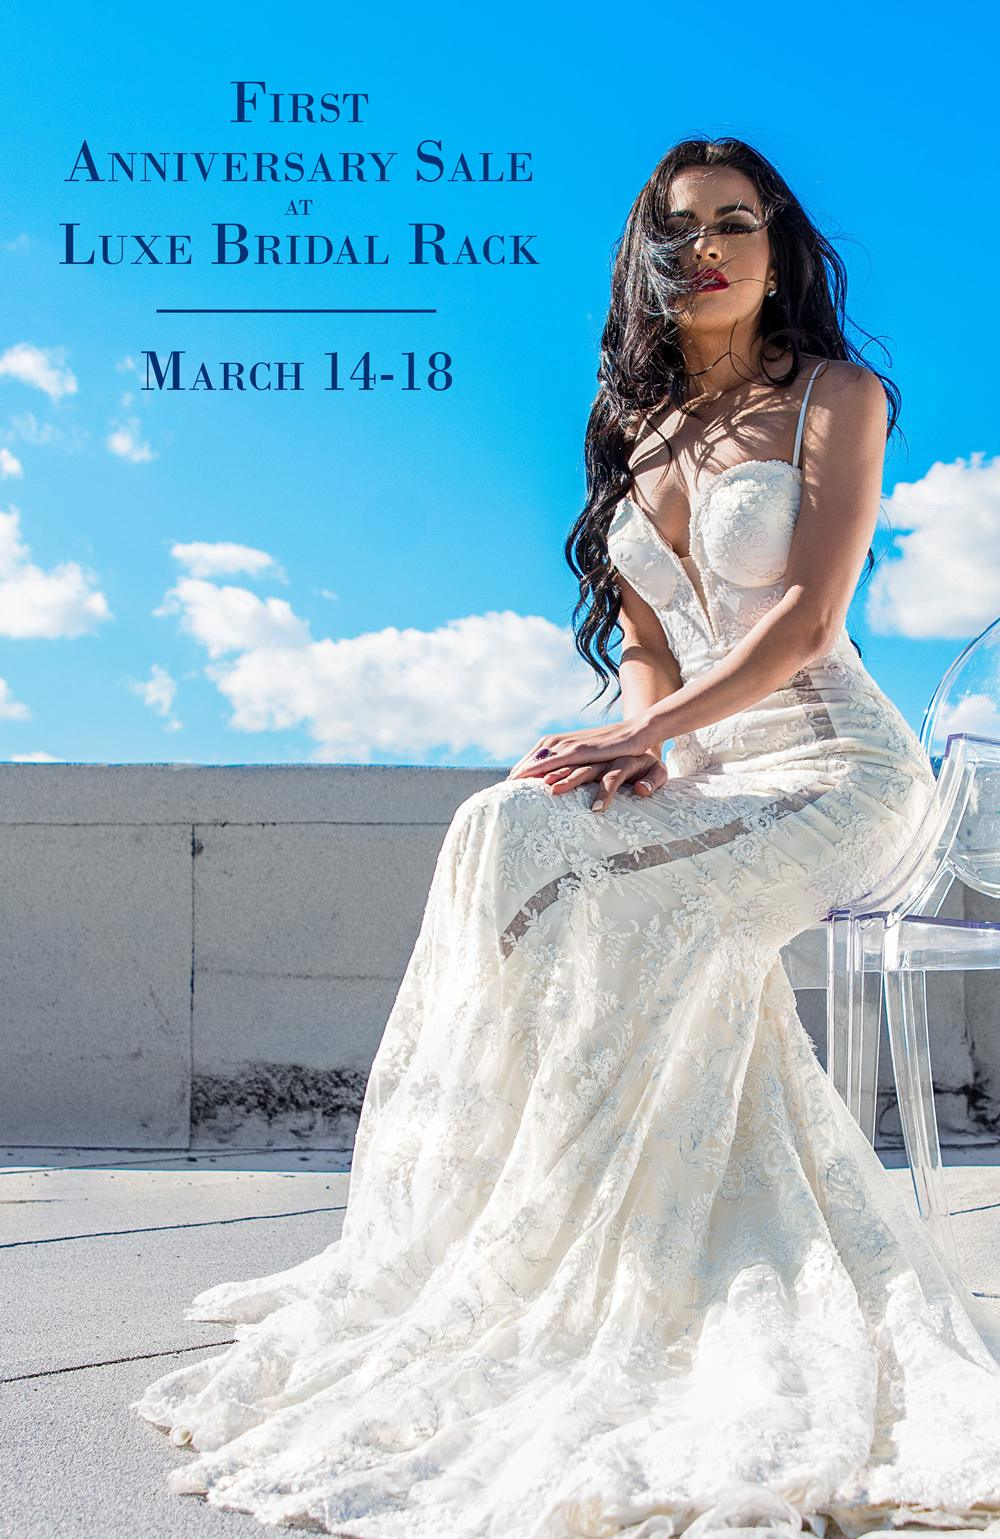 Luxe Bridal Rack First Anniversary Sale March 2018